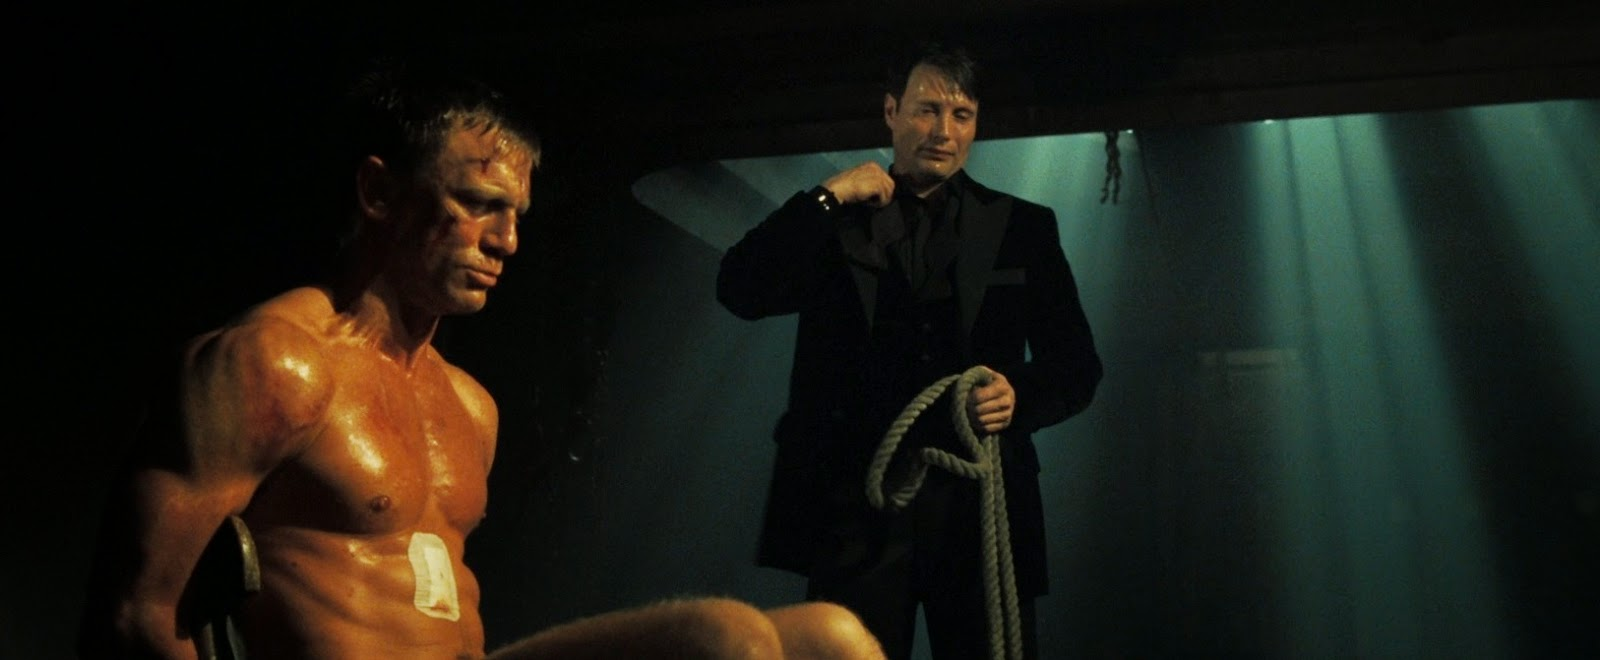 Casino royale film set burns down space lasers ruled out new images